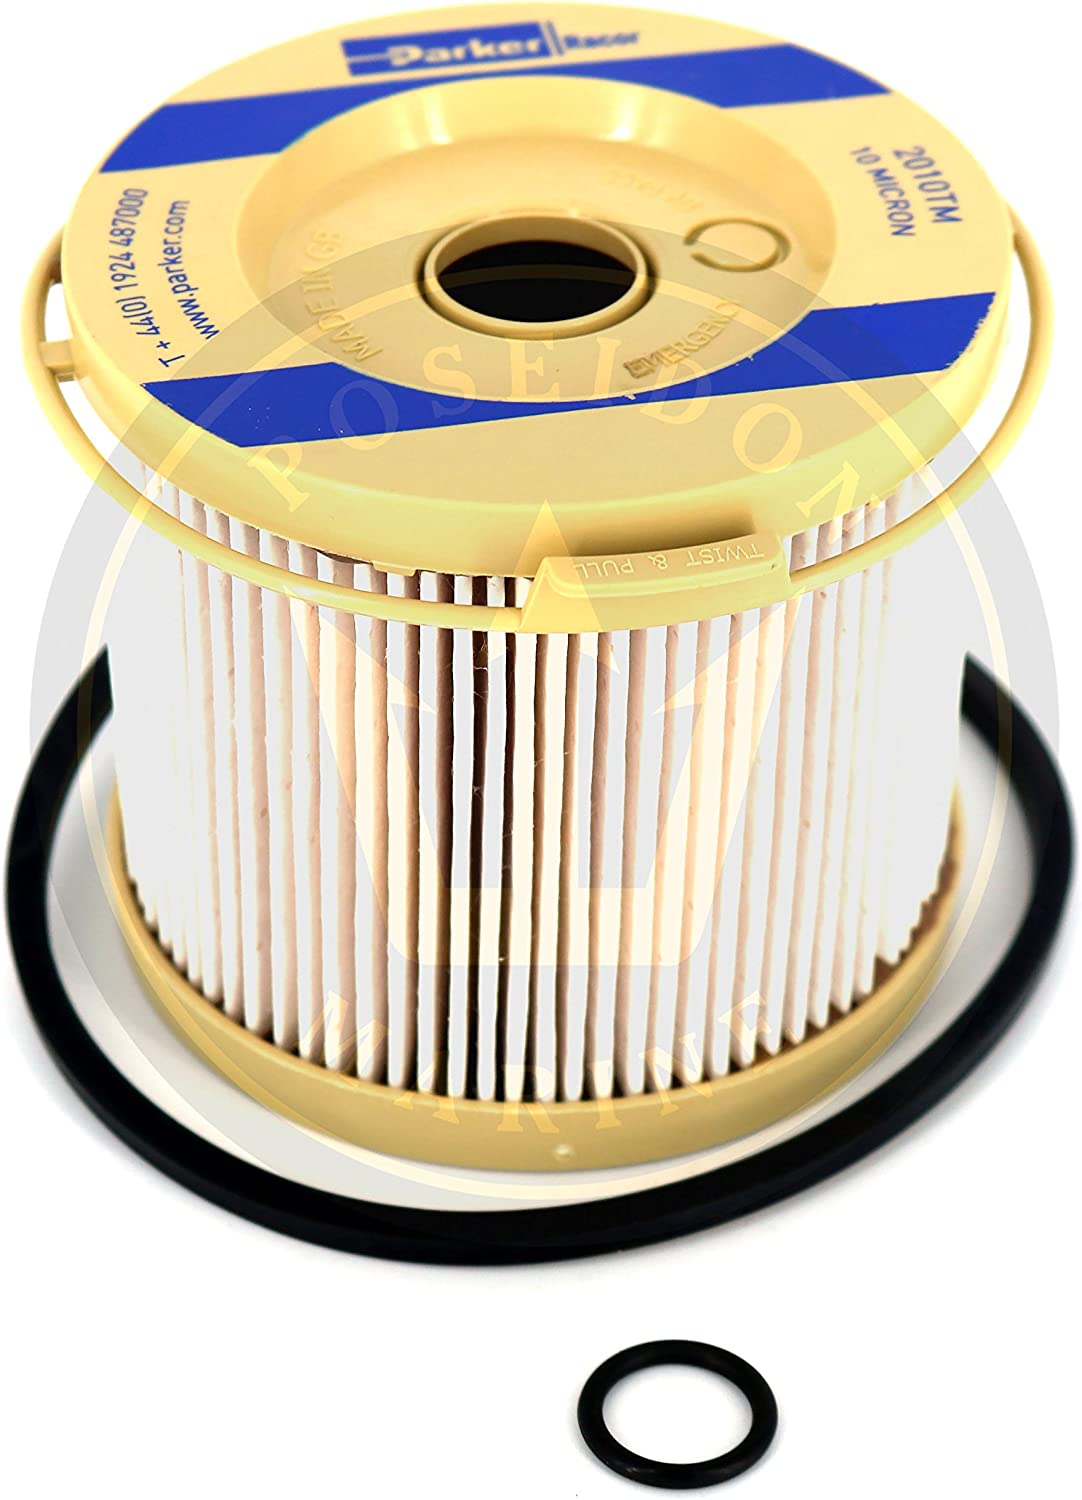 Pack of 2 2010TM-OR Racor Fuel Filter Element 10 Microns